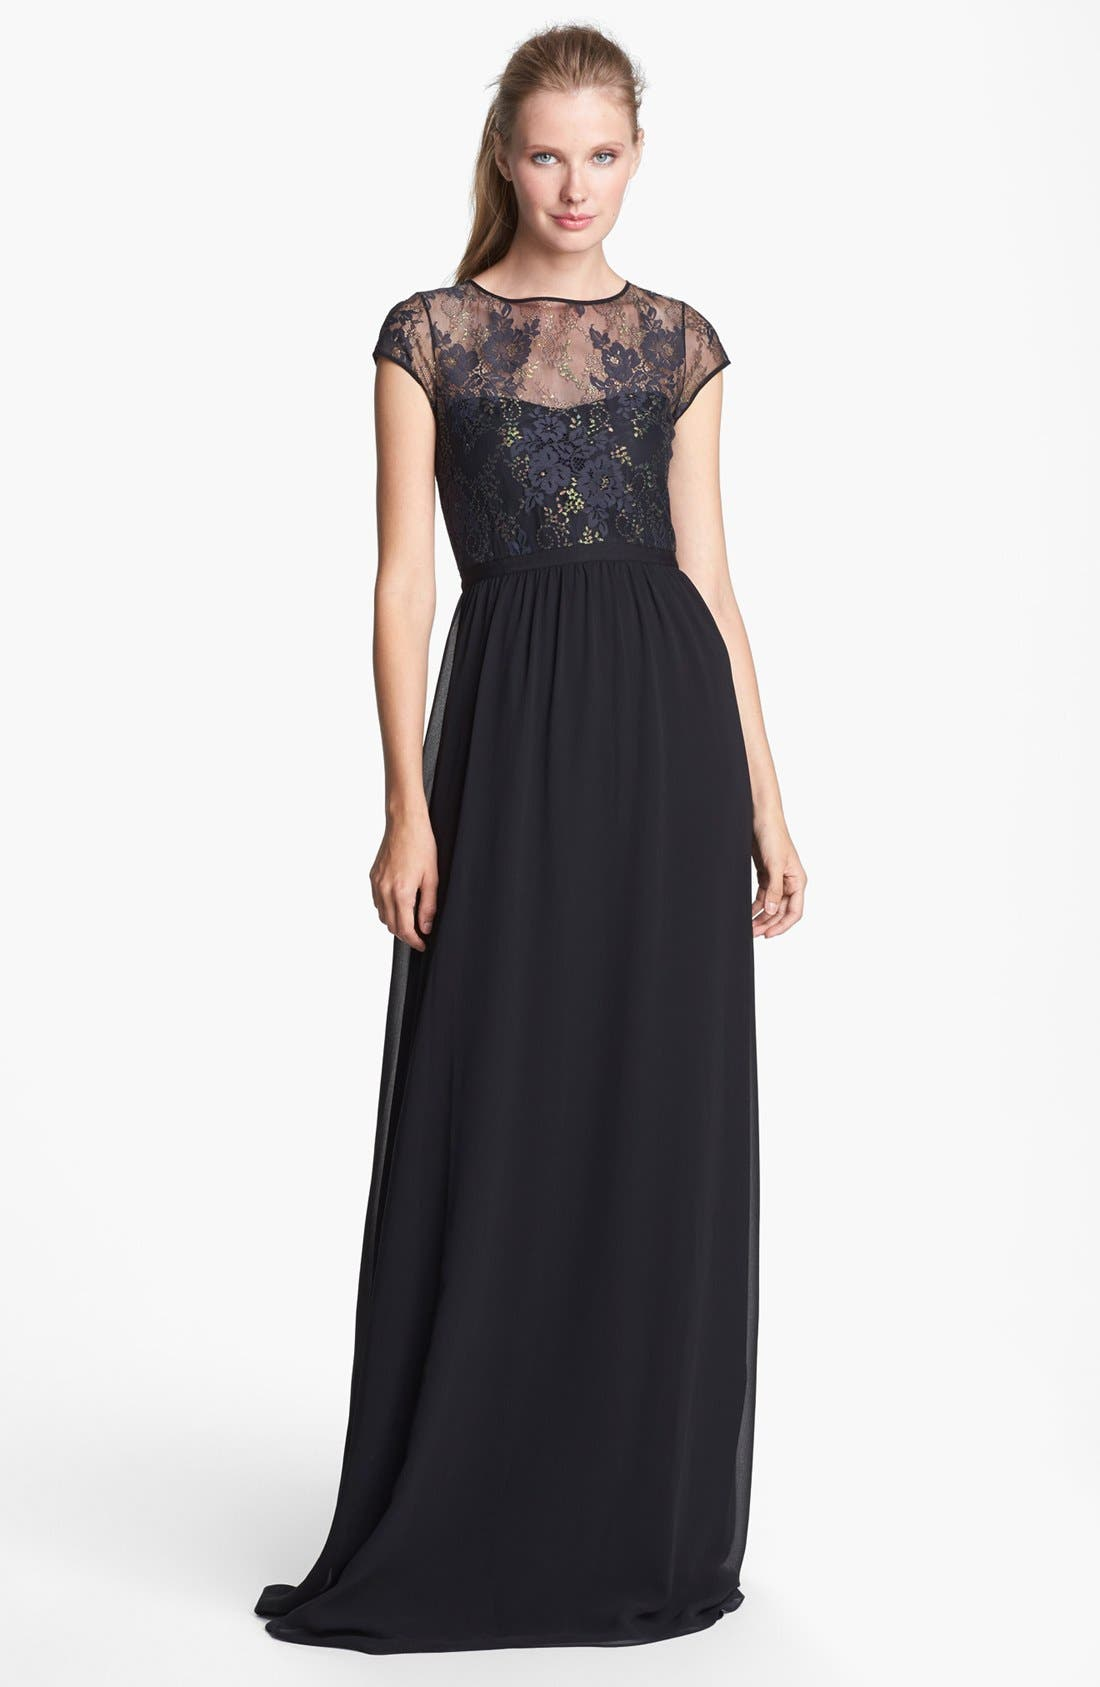 Alternate Image 1 Selected - ERIN erin fetherston 'Peyton' Illusion Yoke Chiffon Gown